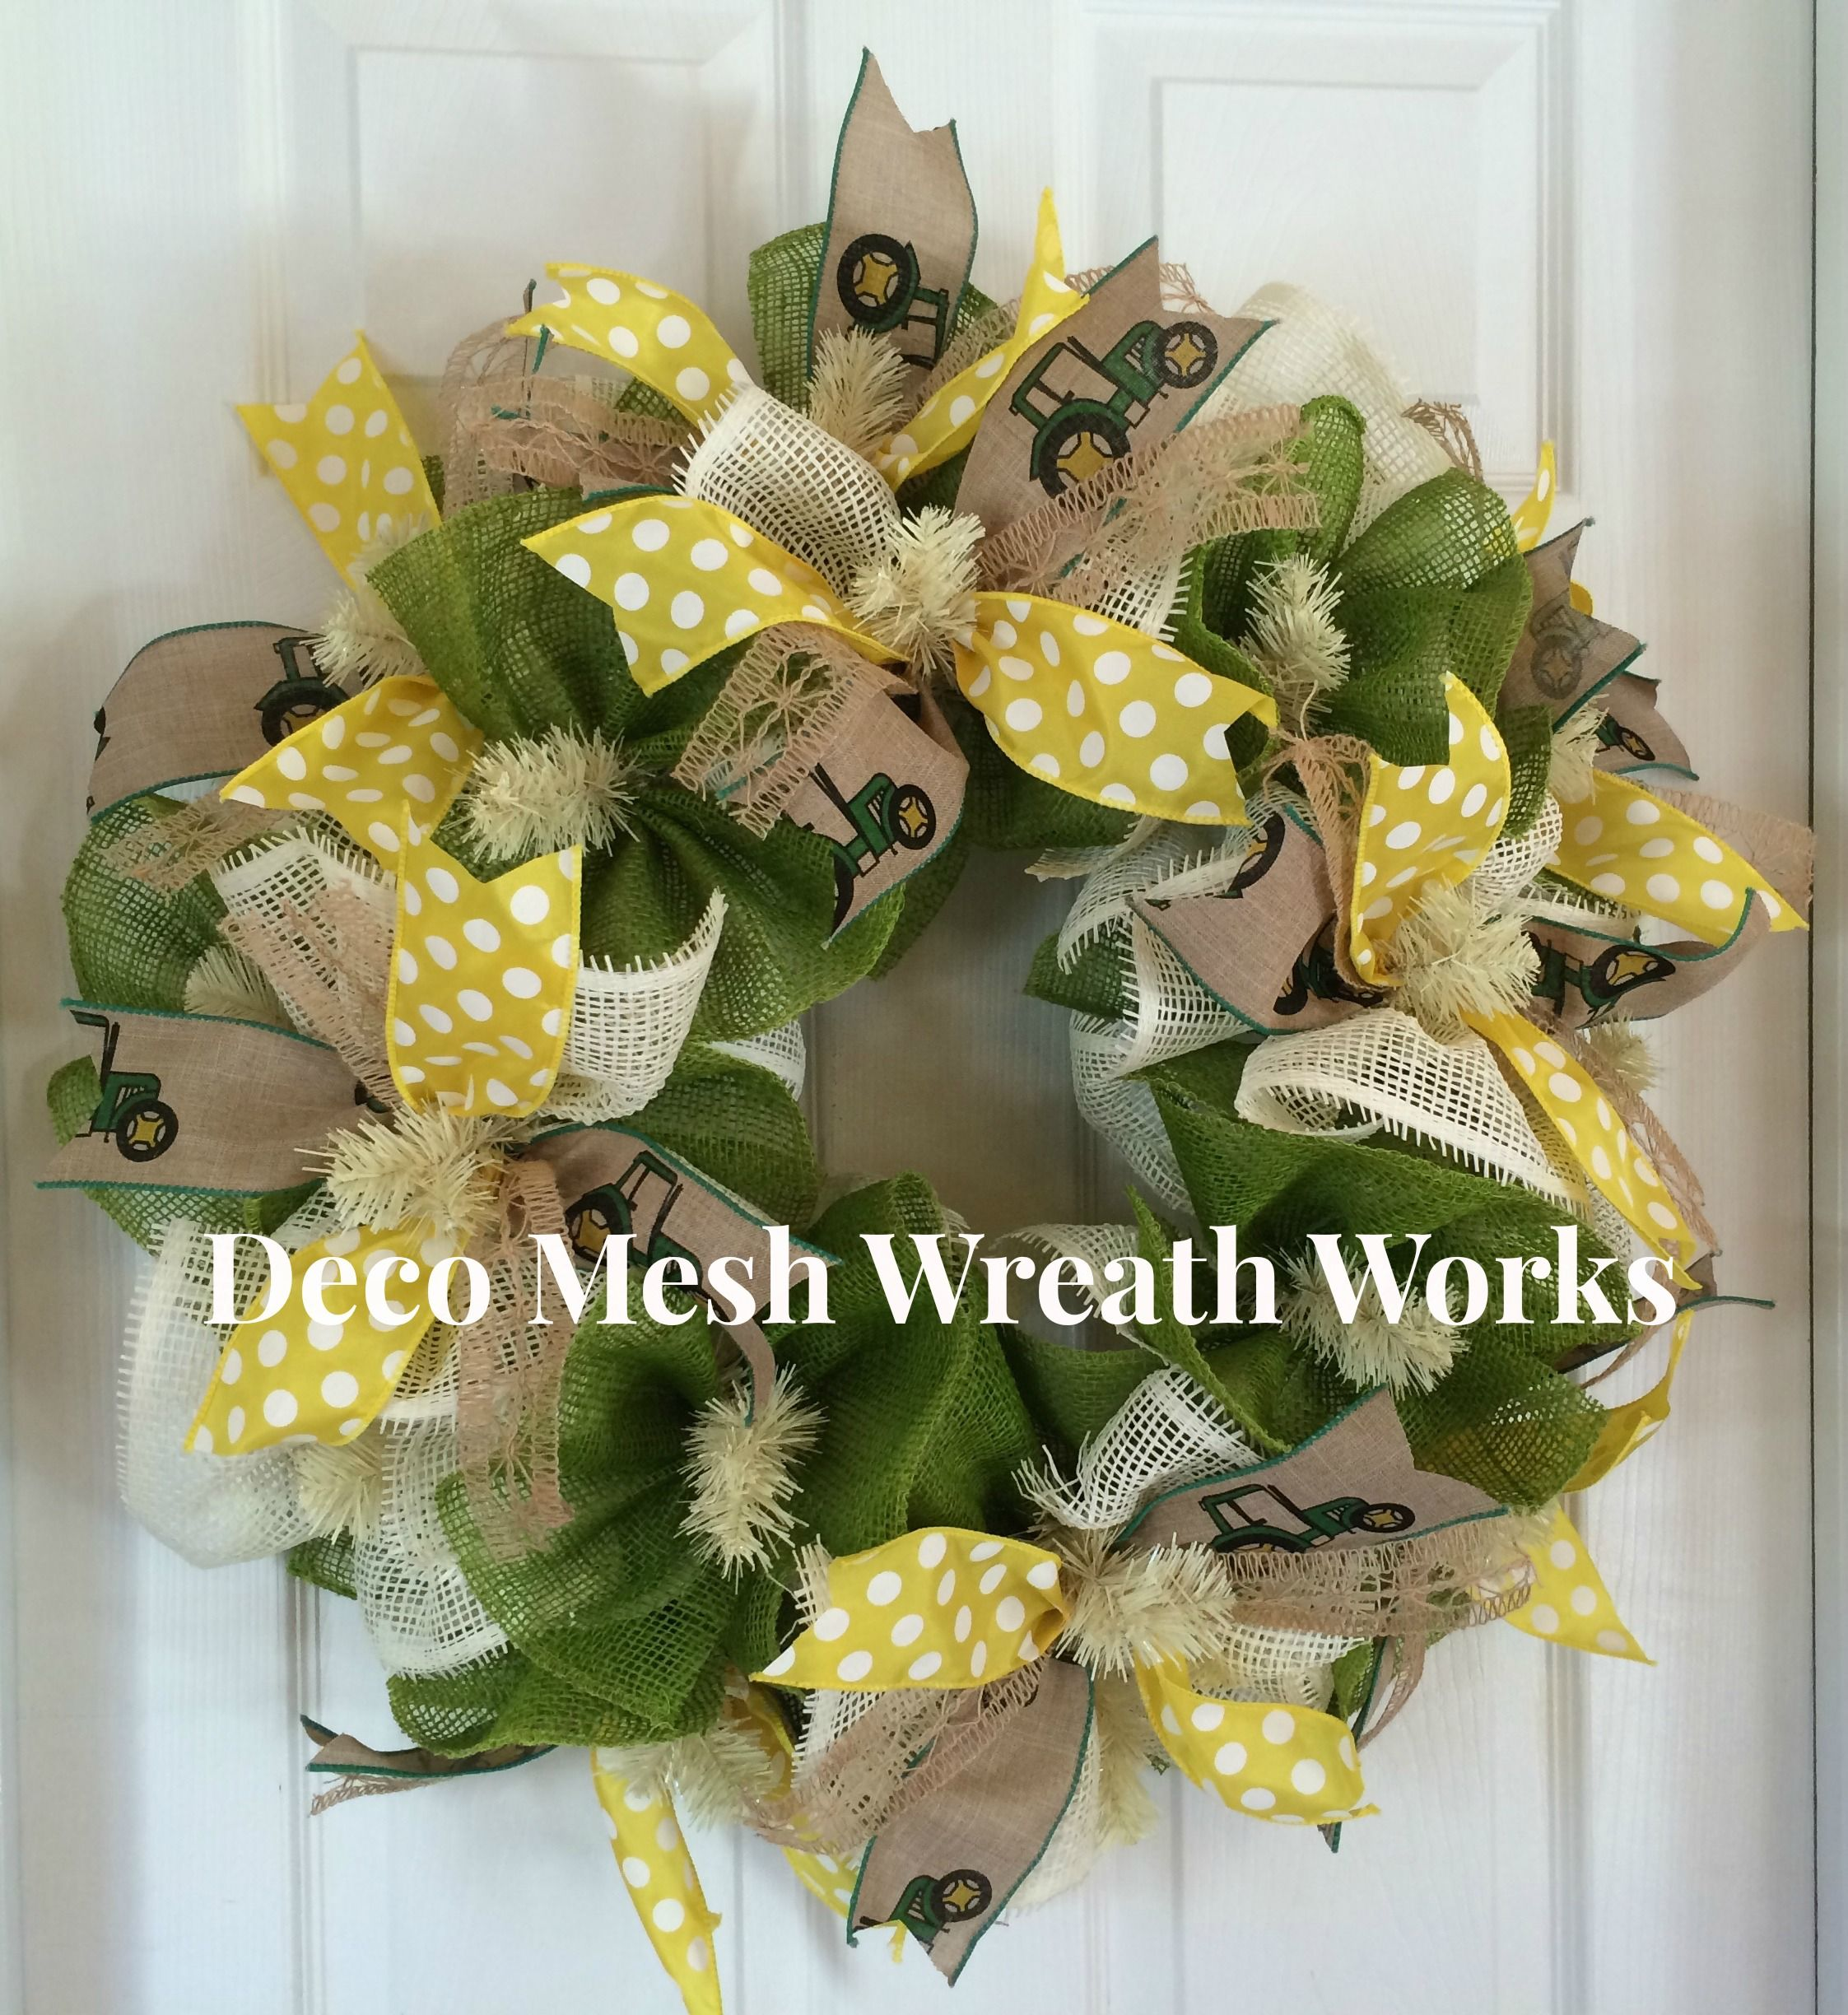 24 Inch, John Deere Inspired Wreath Made With Woven Paper